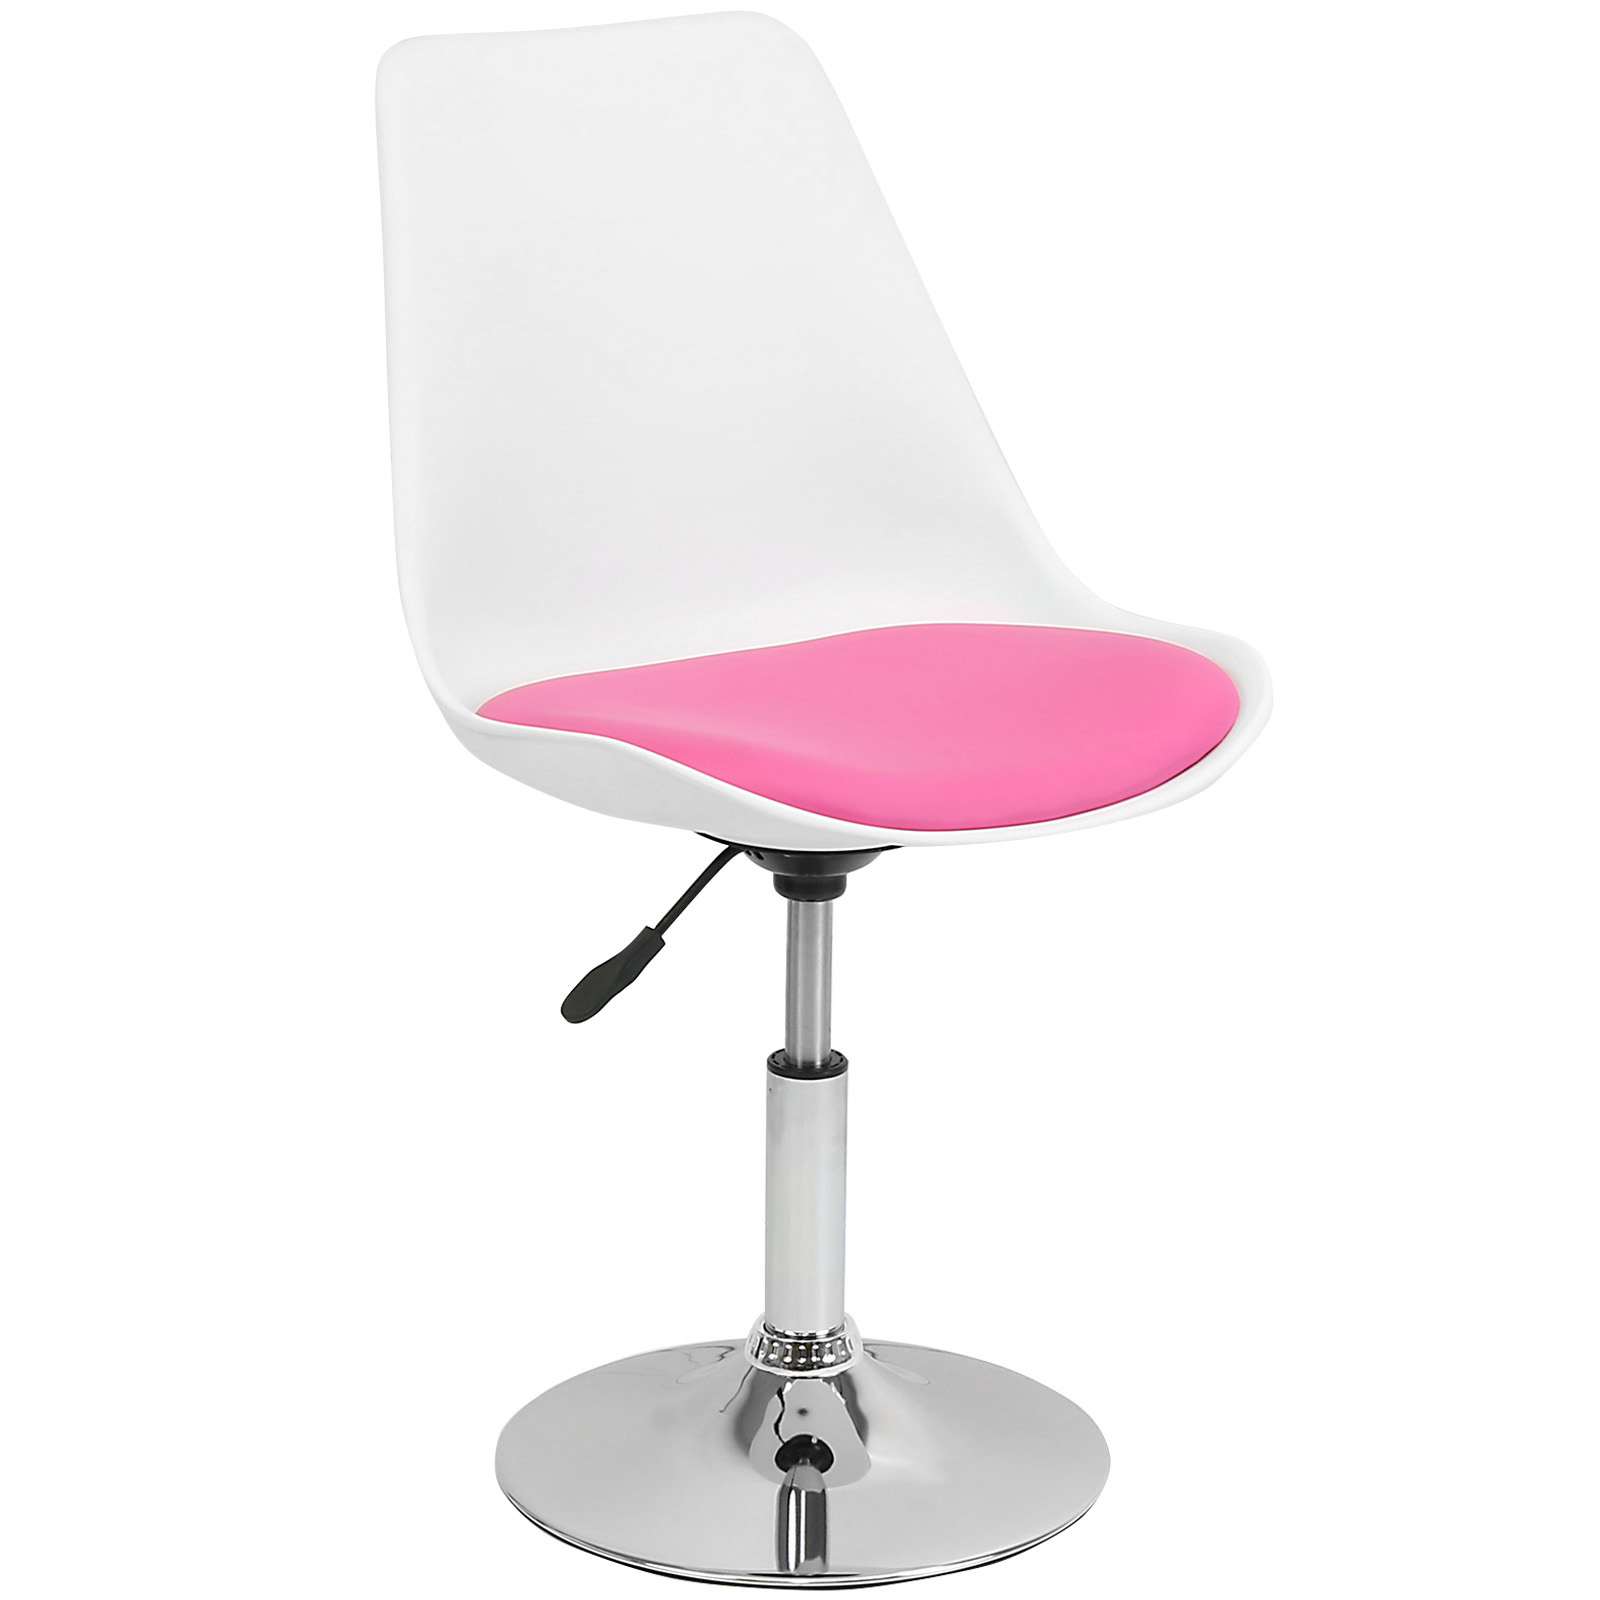 white swivel desk chair uk ergonomic for back pain hartleys pink and seat tulip reception